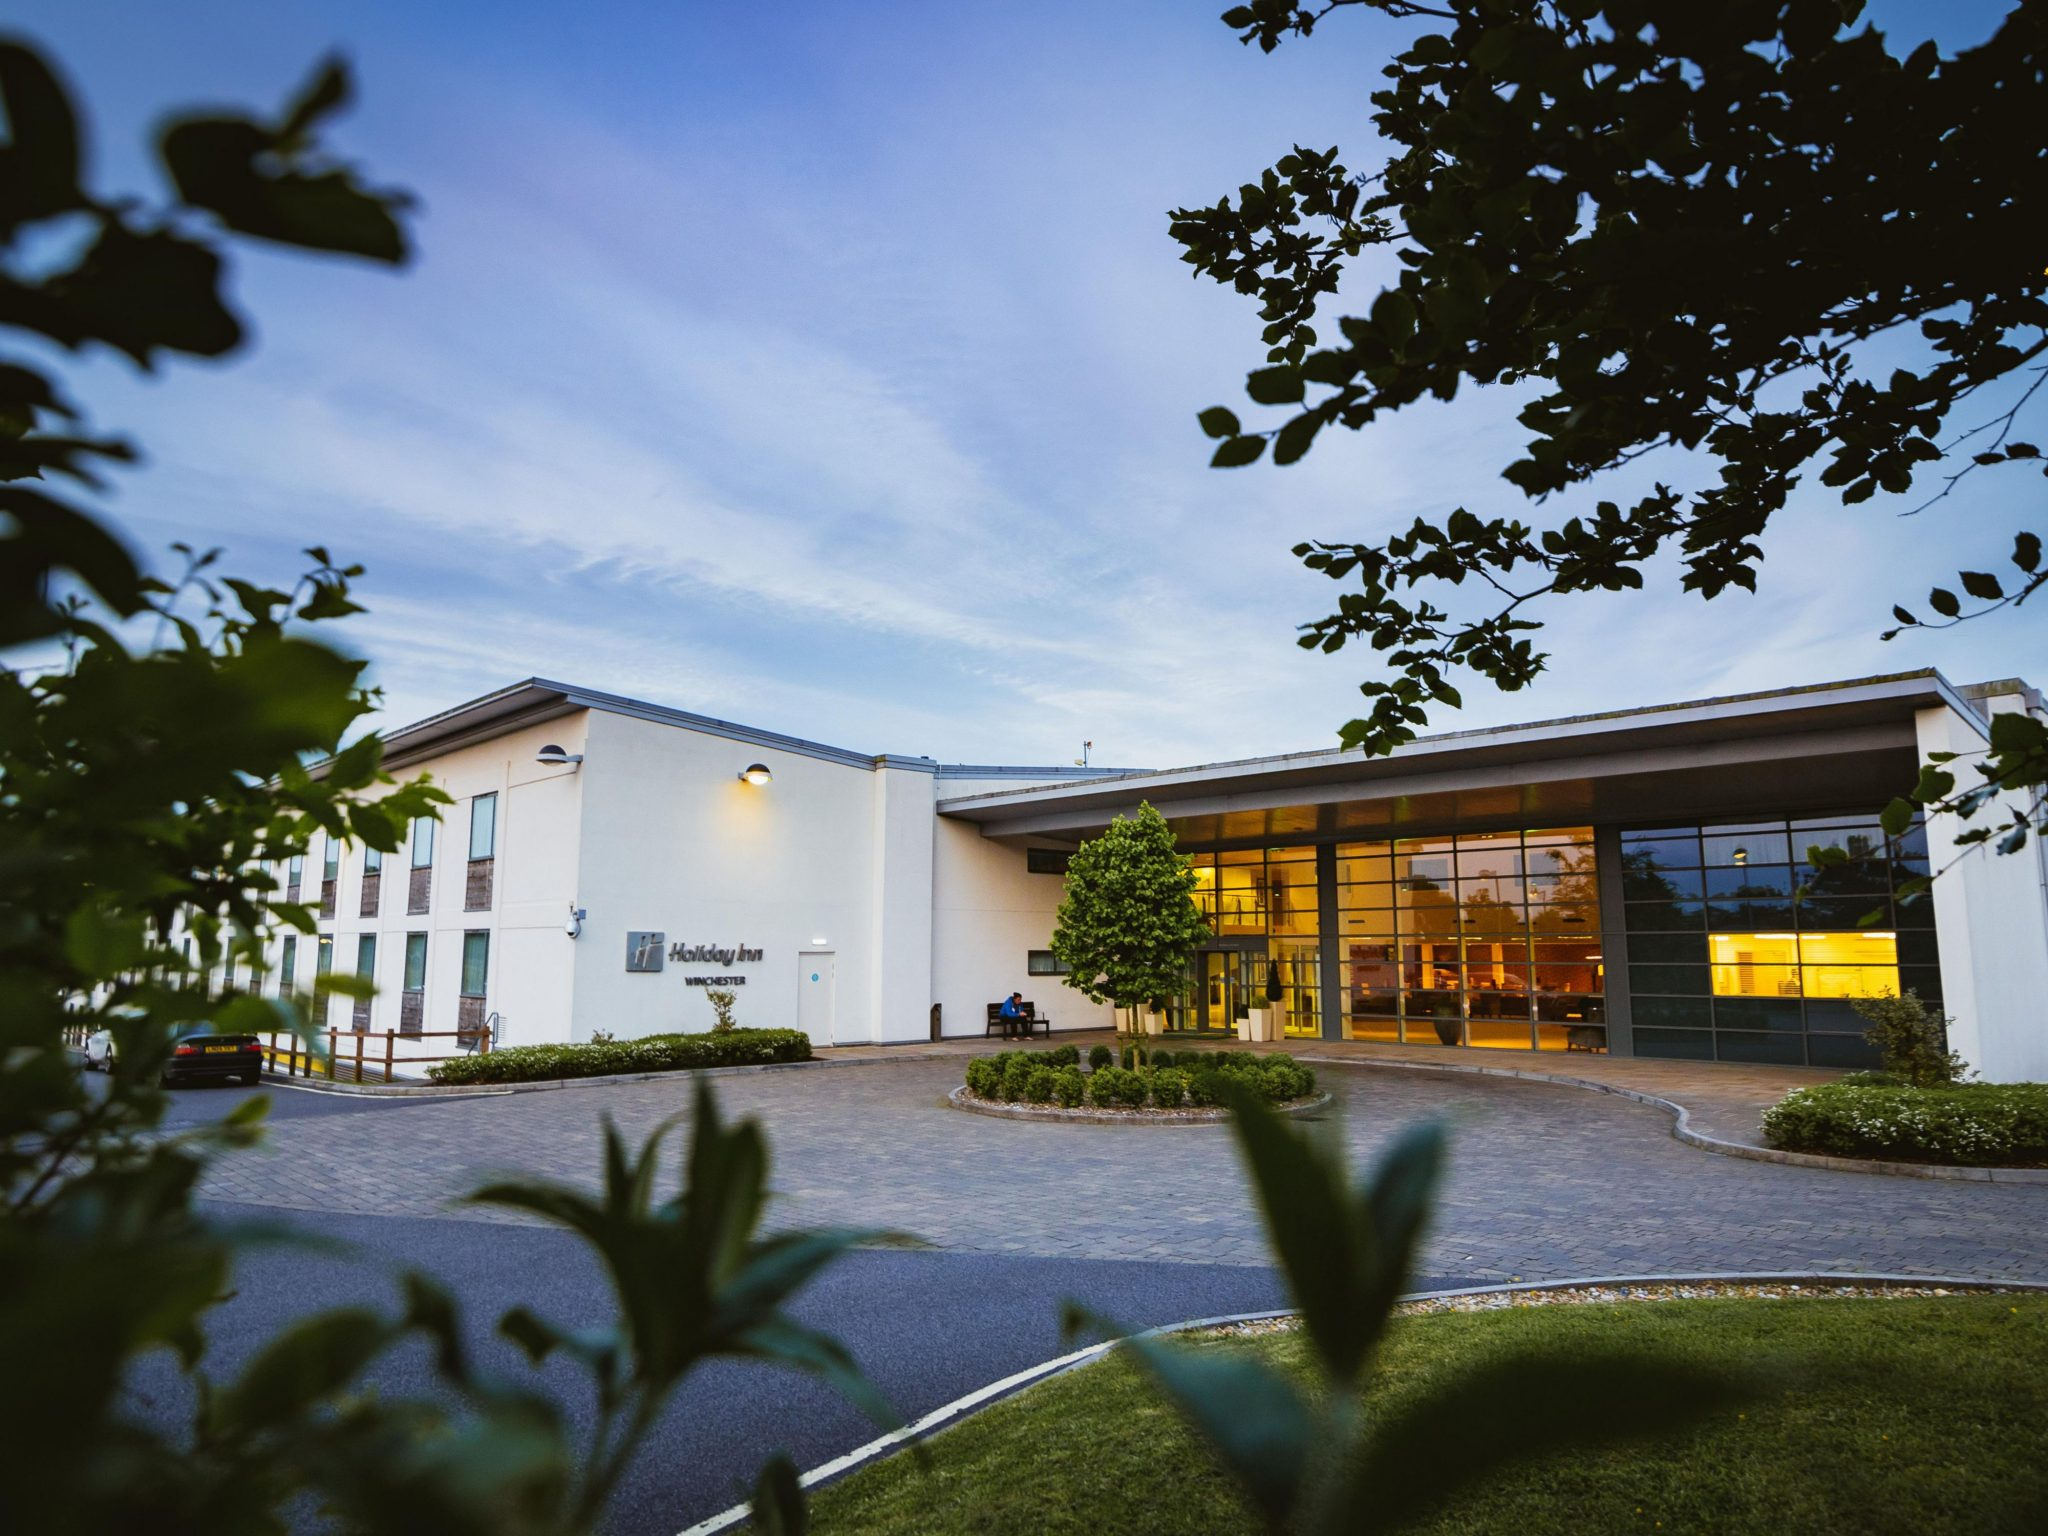 Holiday Inn Winchester by Darling Associates (Formerly Architect CT)